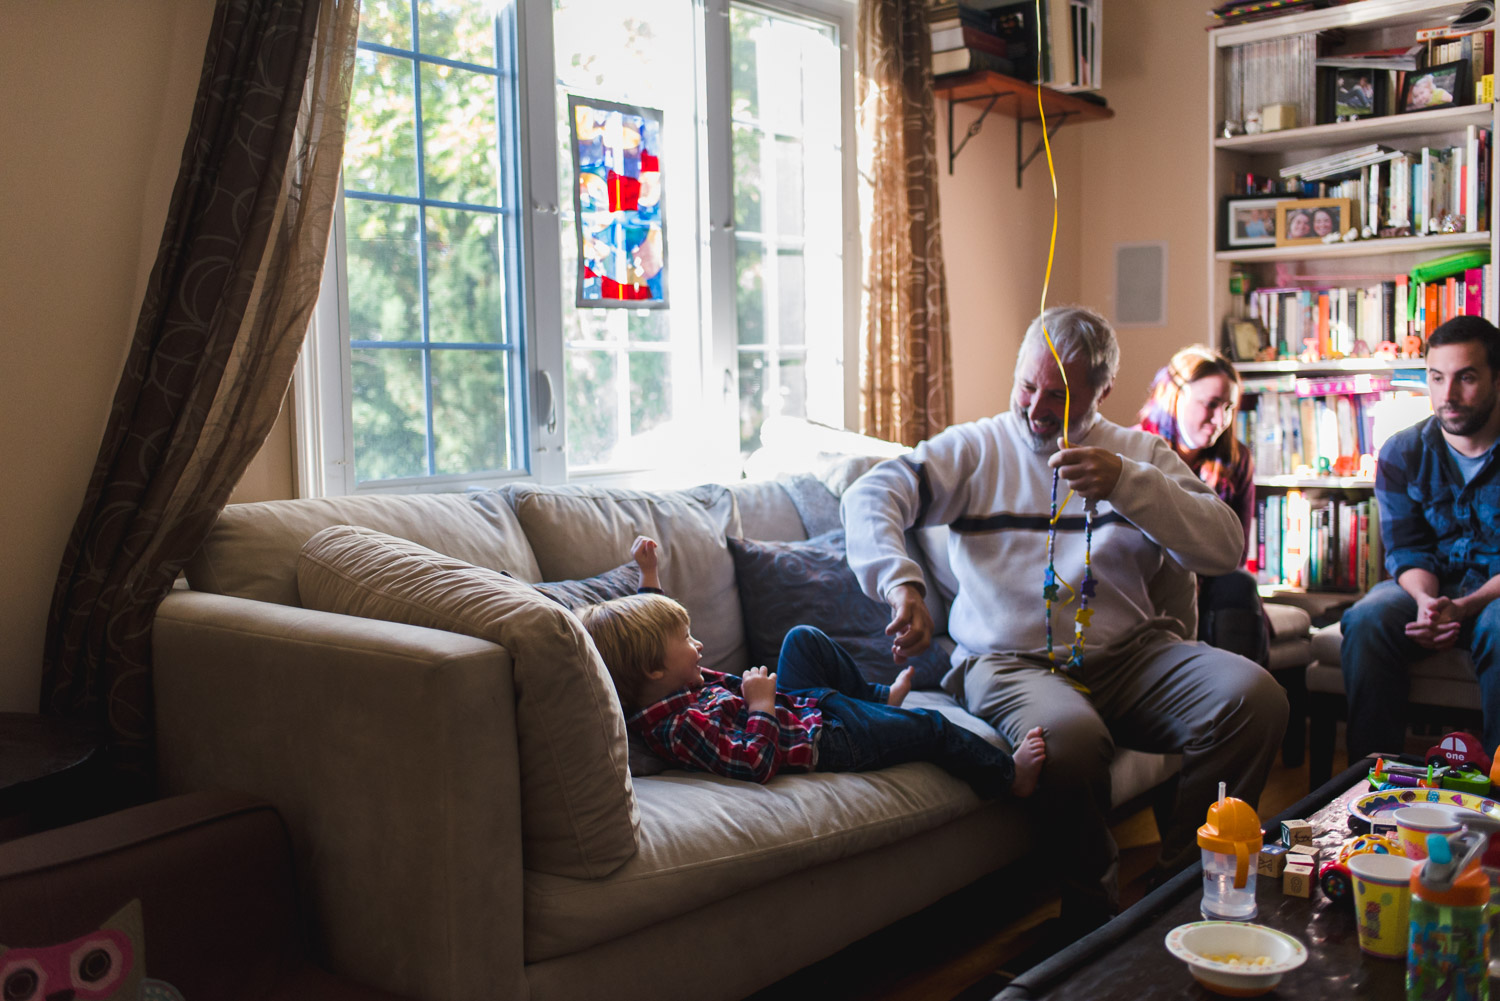 Grandfather playing with grandson on the couch.